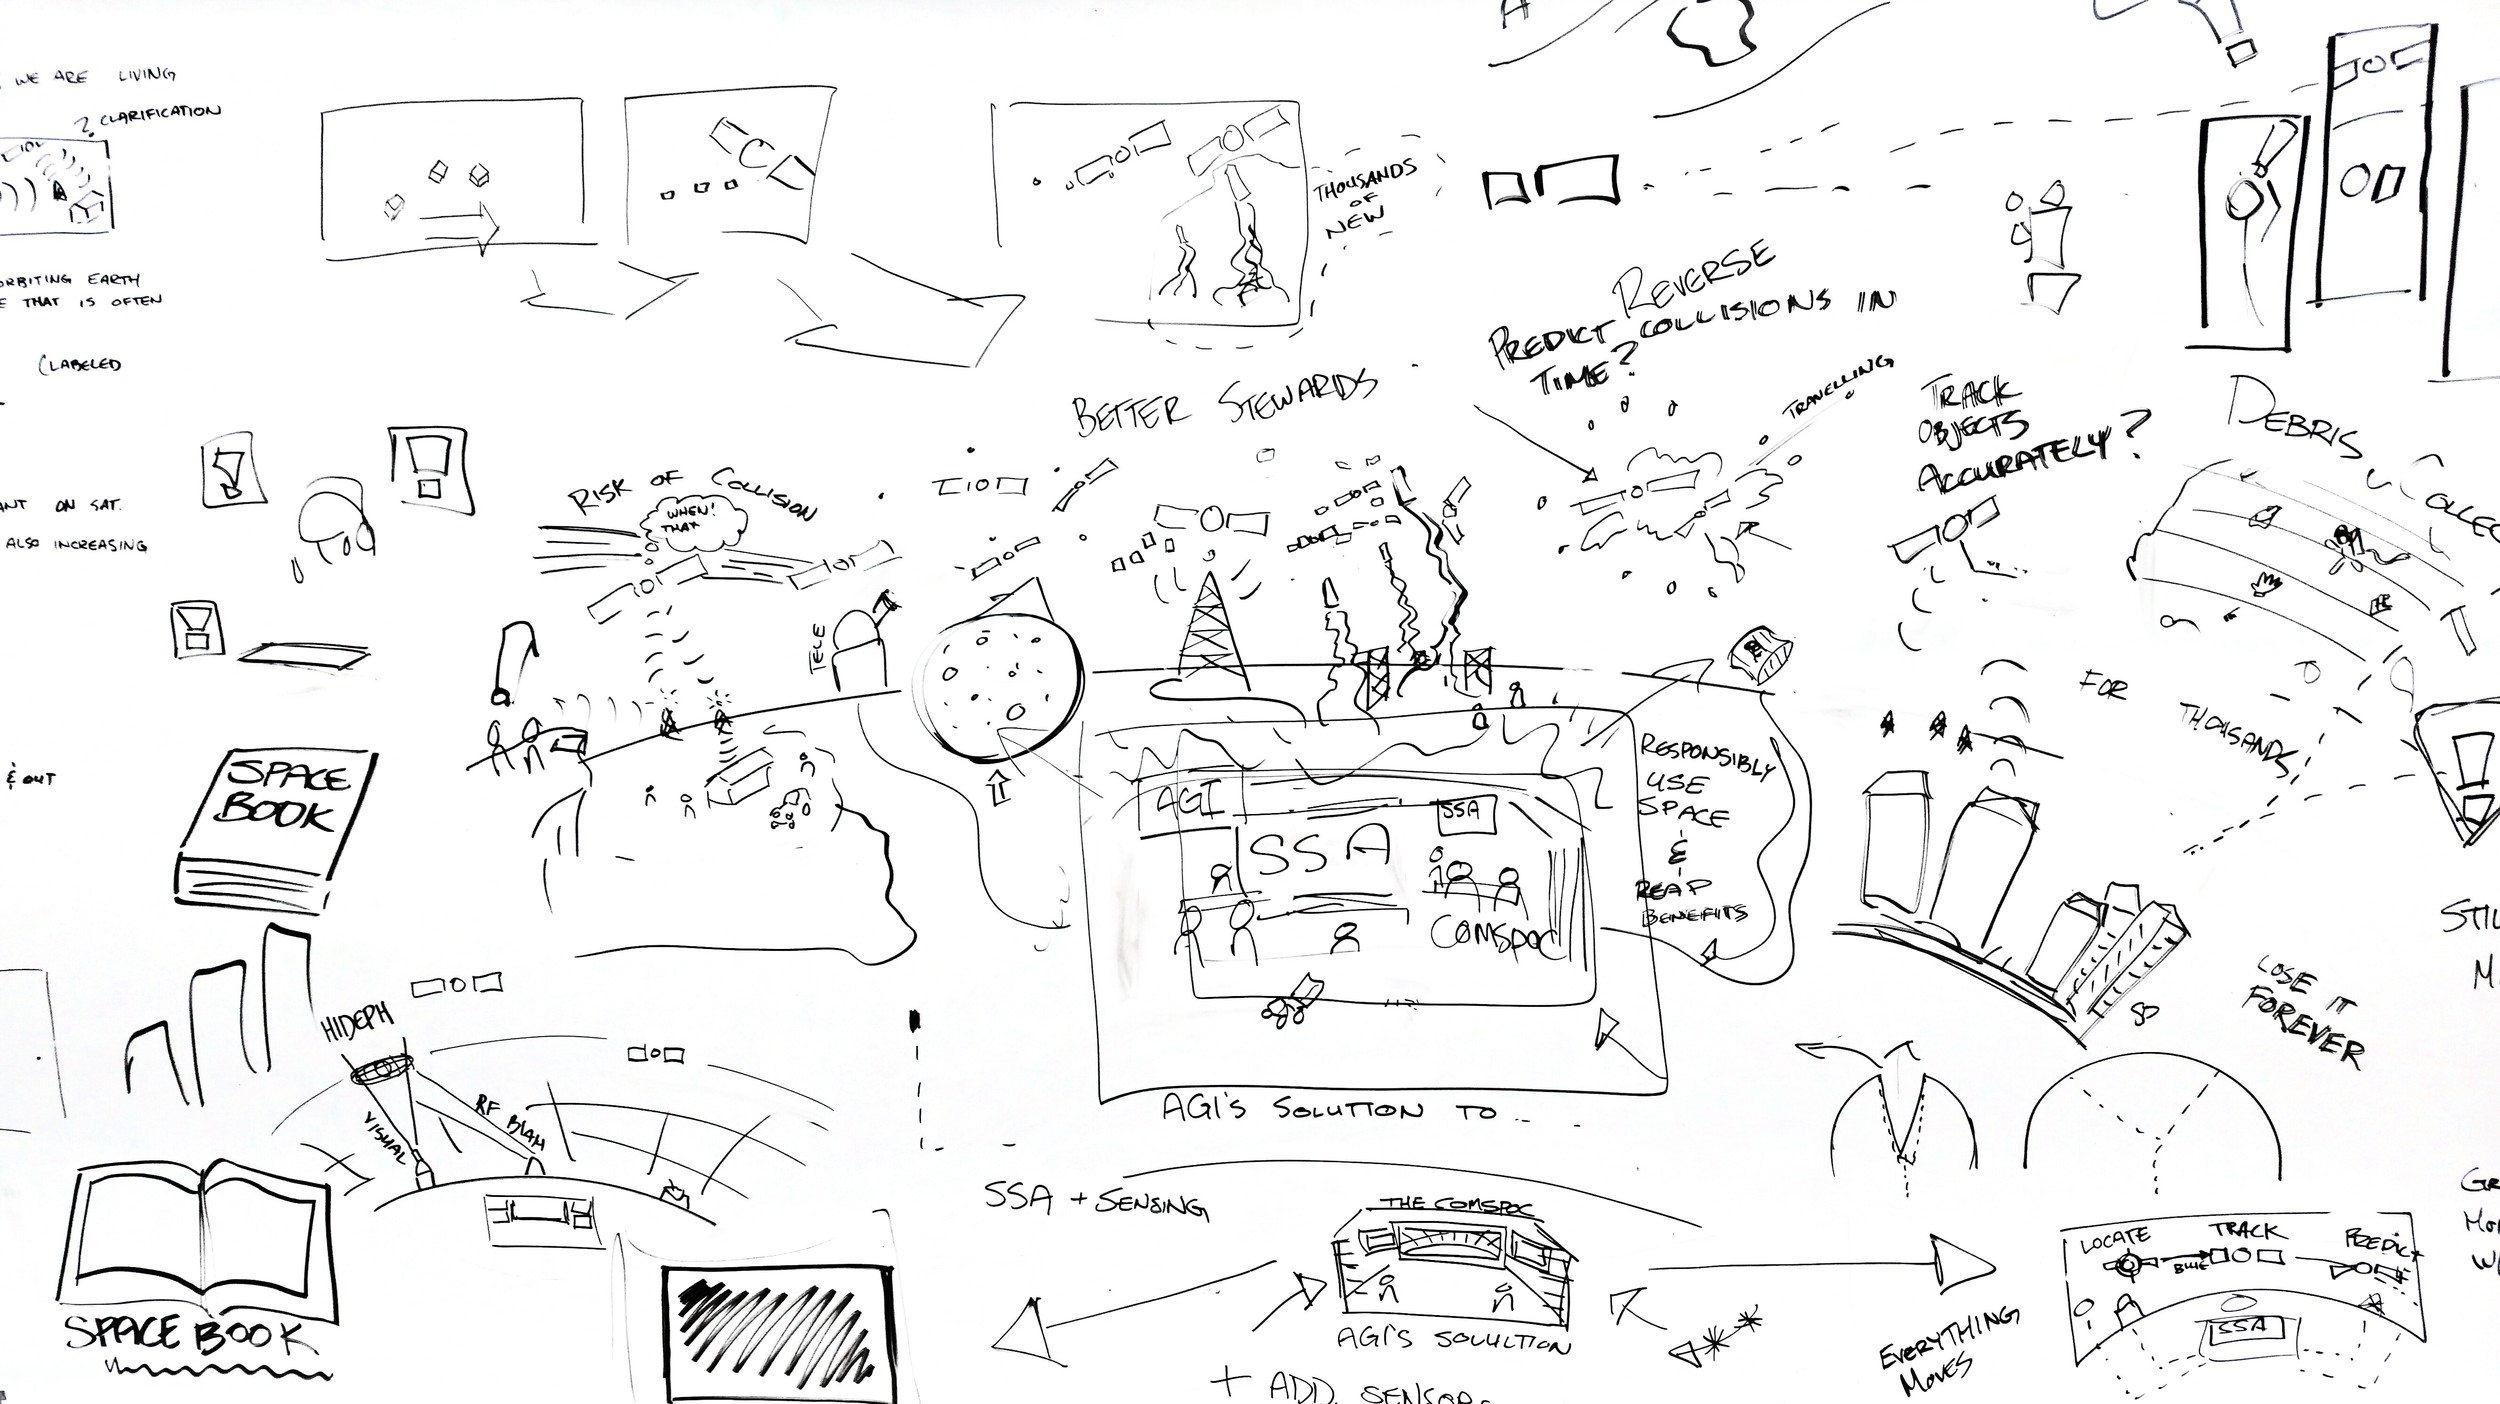 Results from one of our early whiteboard sessions to work on the placement of scenes and the composition as a whole.